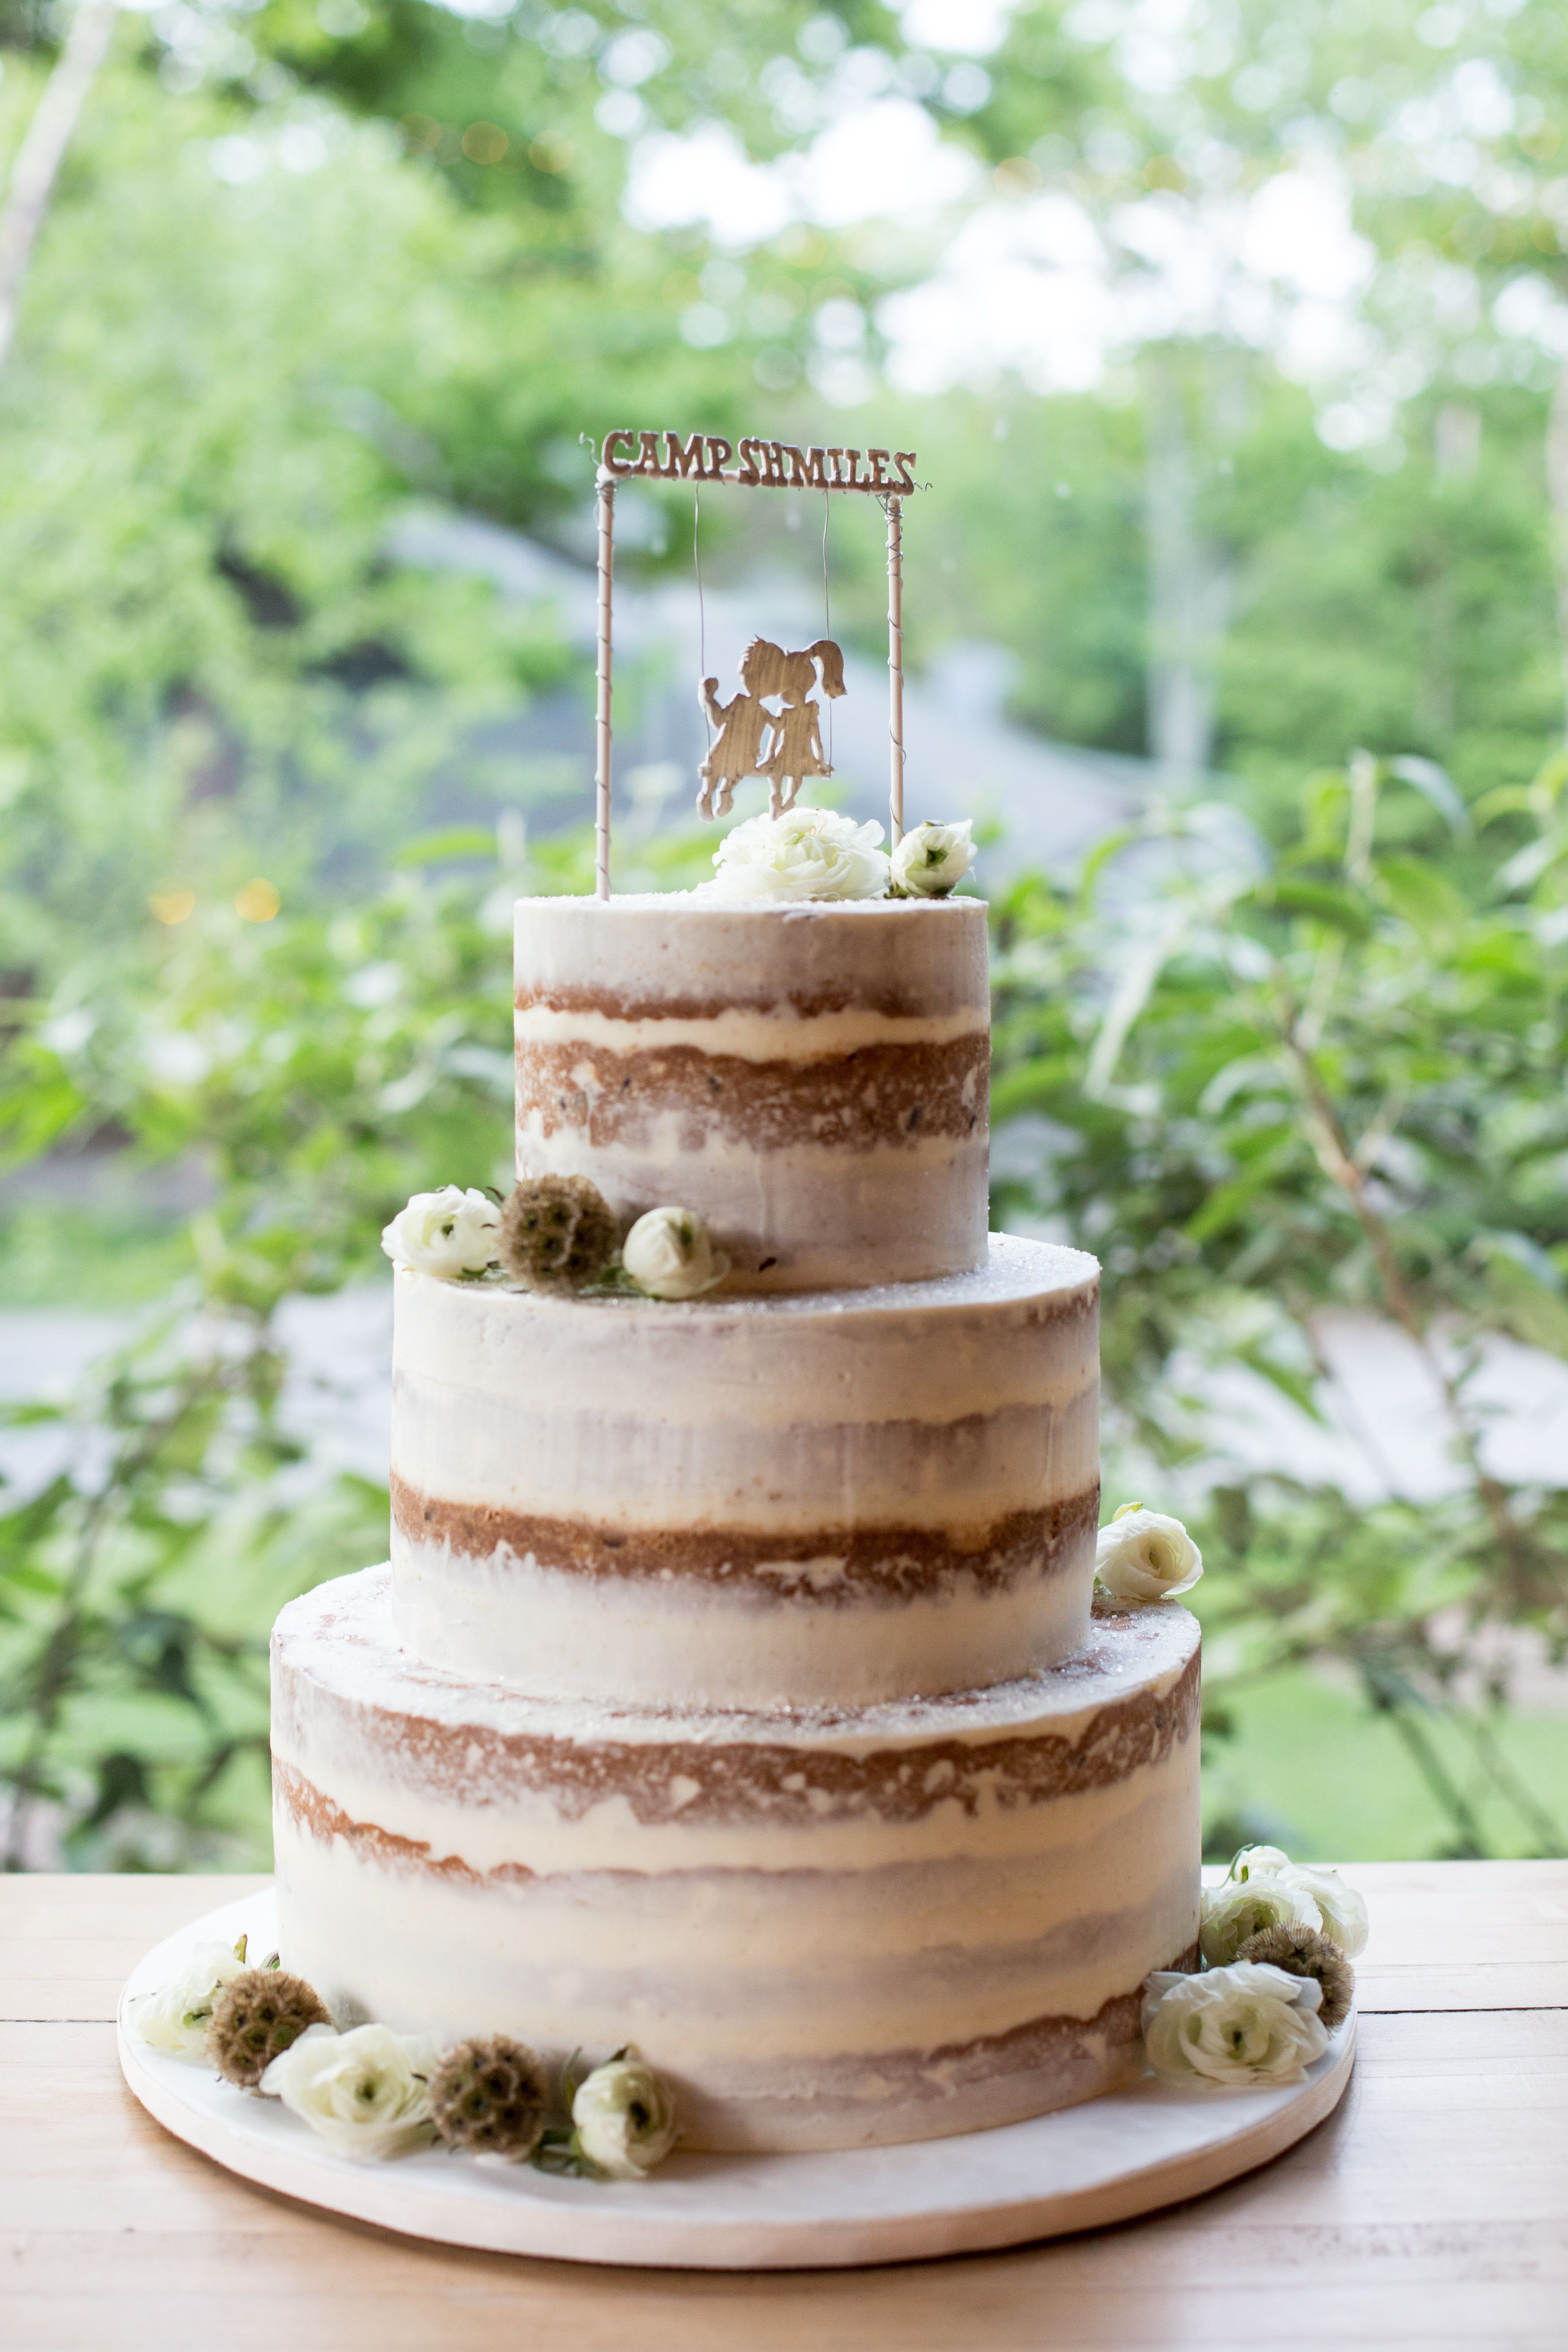 Rustic Themed Wedding Cakes  Rustic Camp Themed Naked Wedding Cake